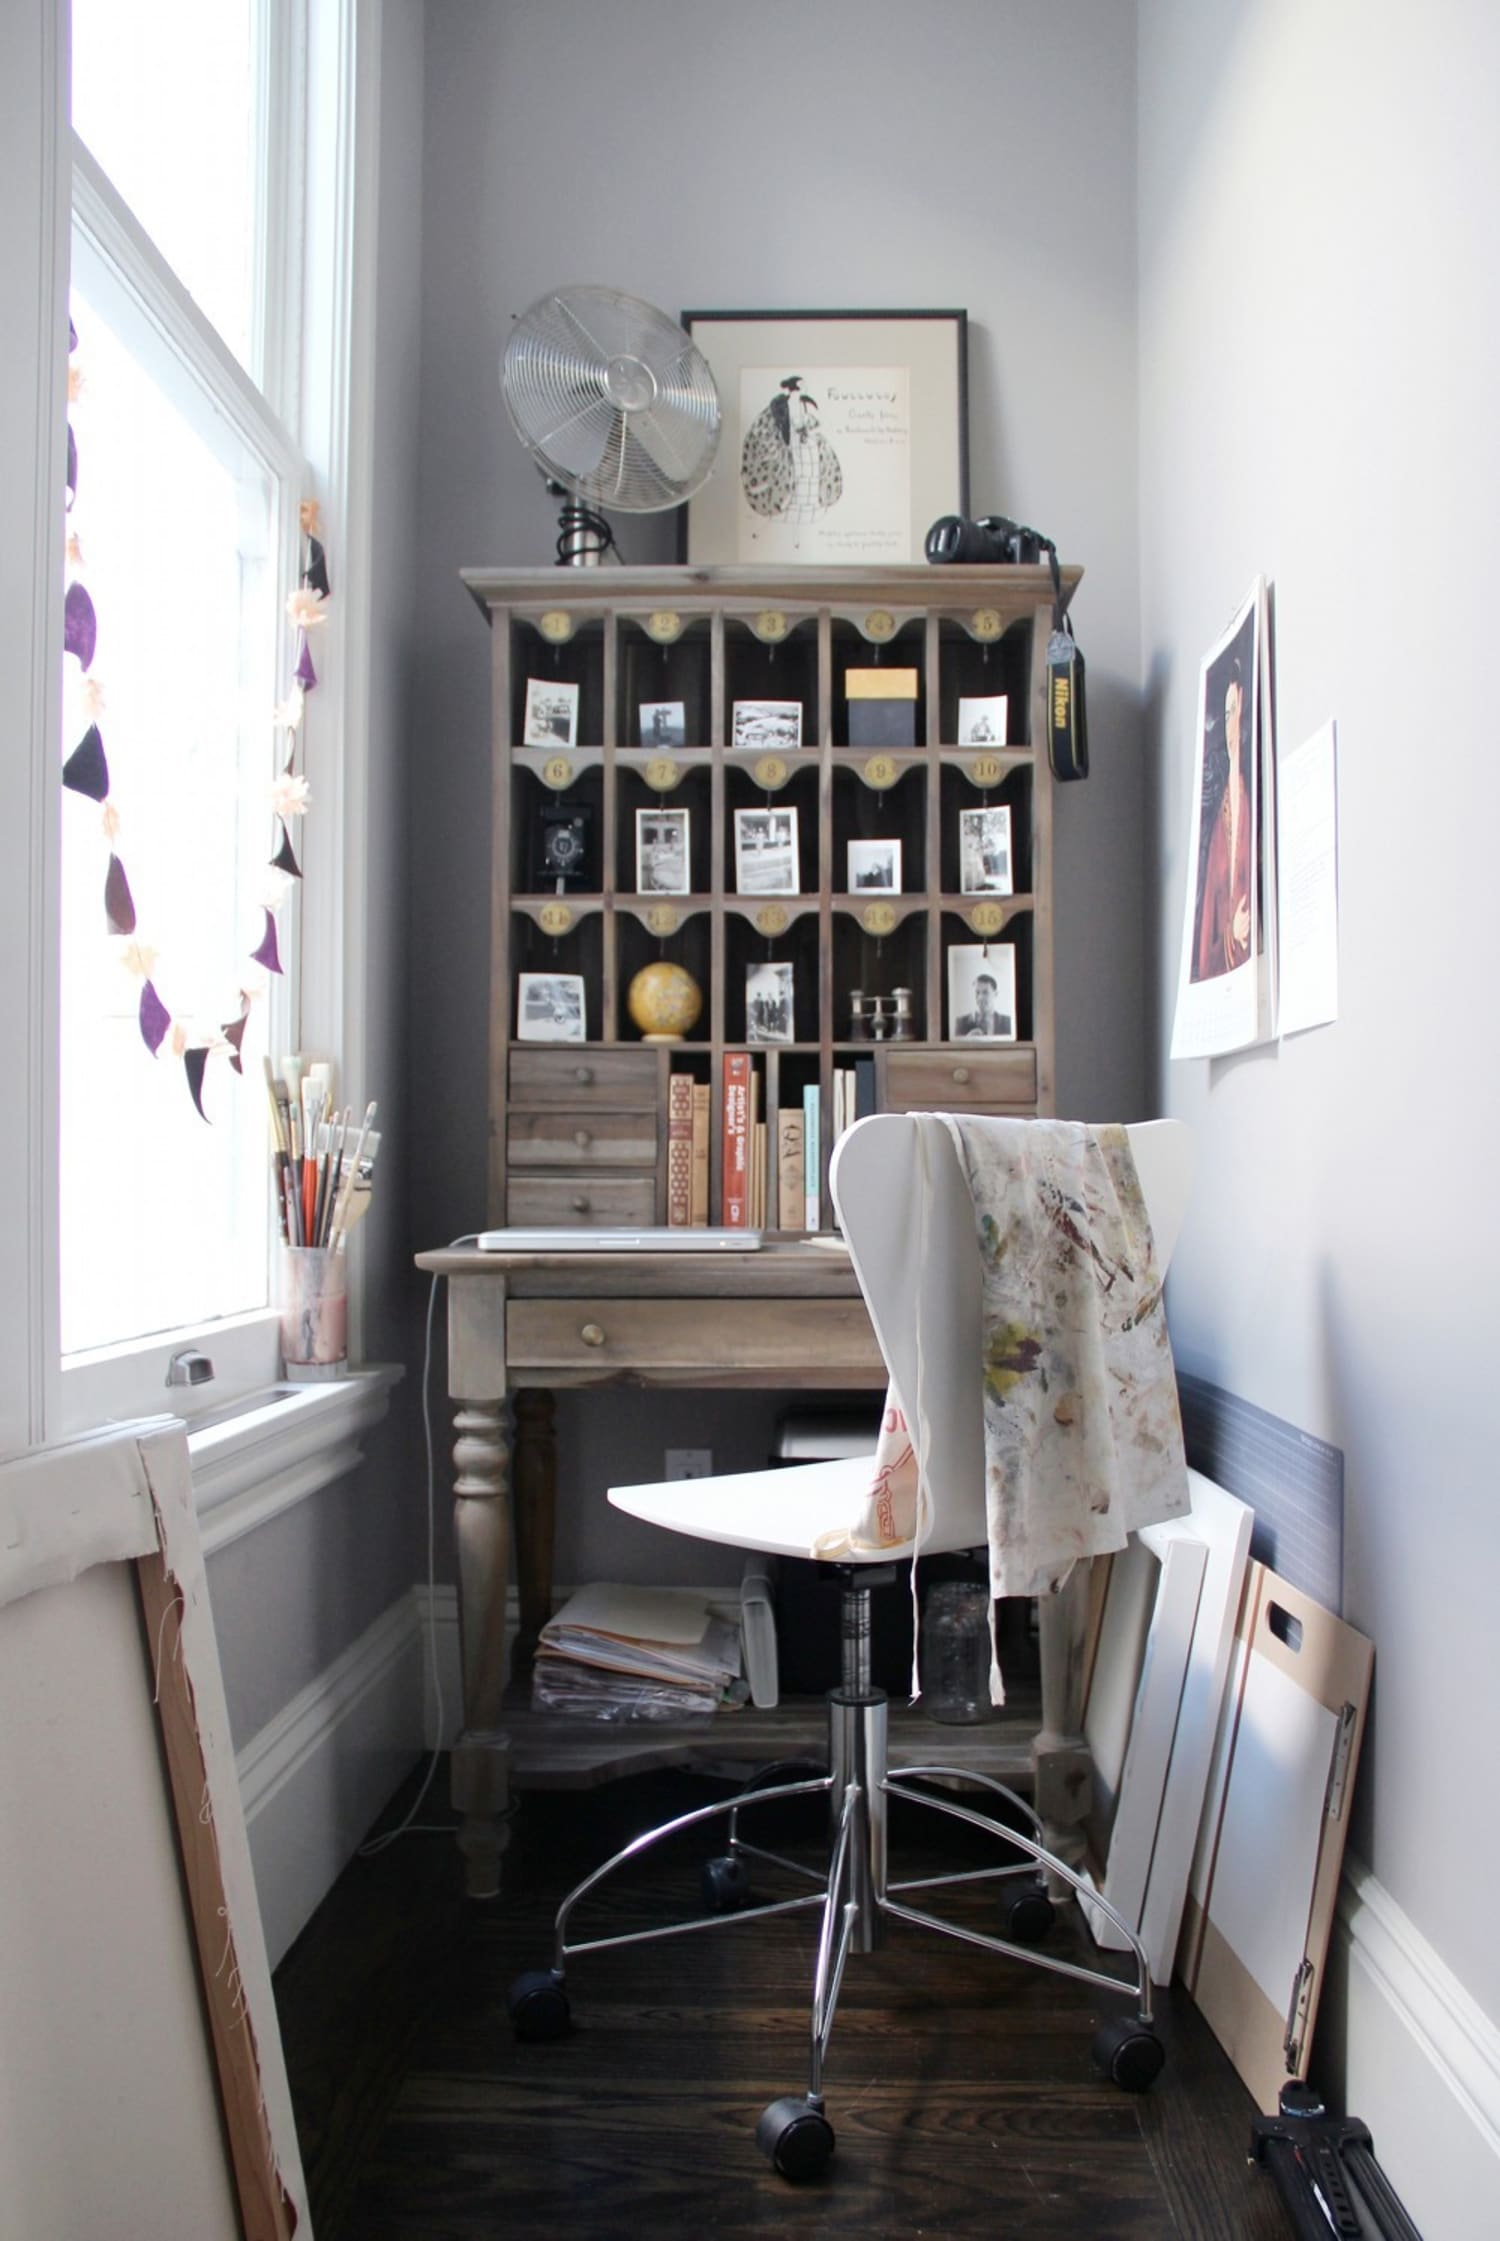 Small Living Room Apartment Therapy: Small Space Solutions: Compact & Smart Home Workstations